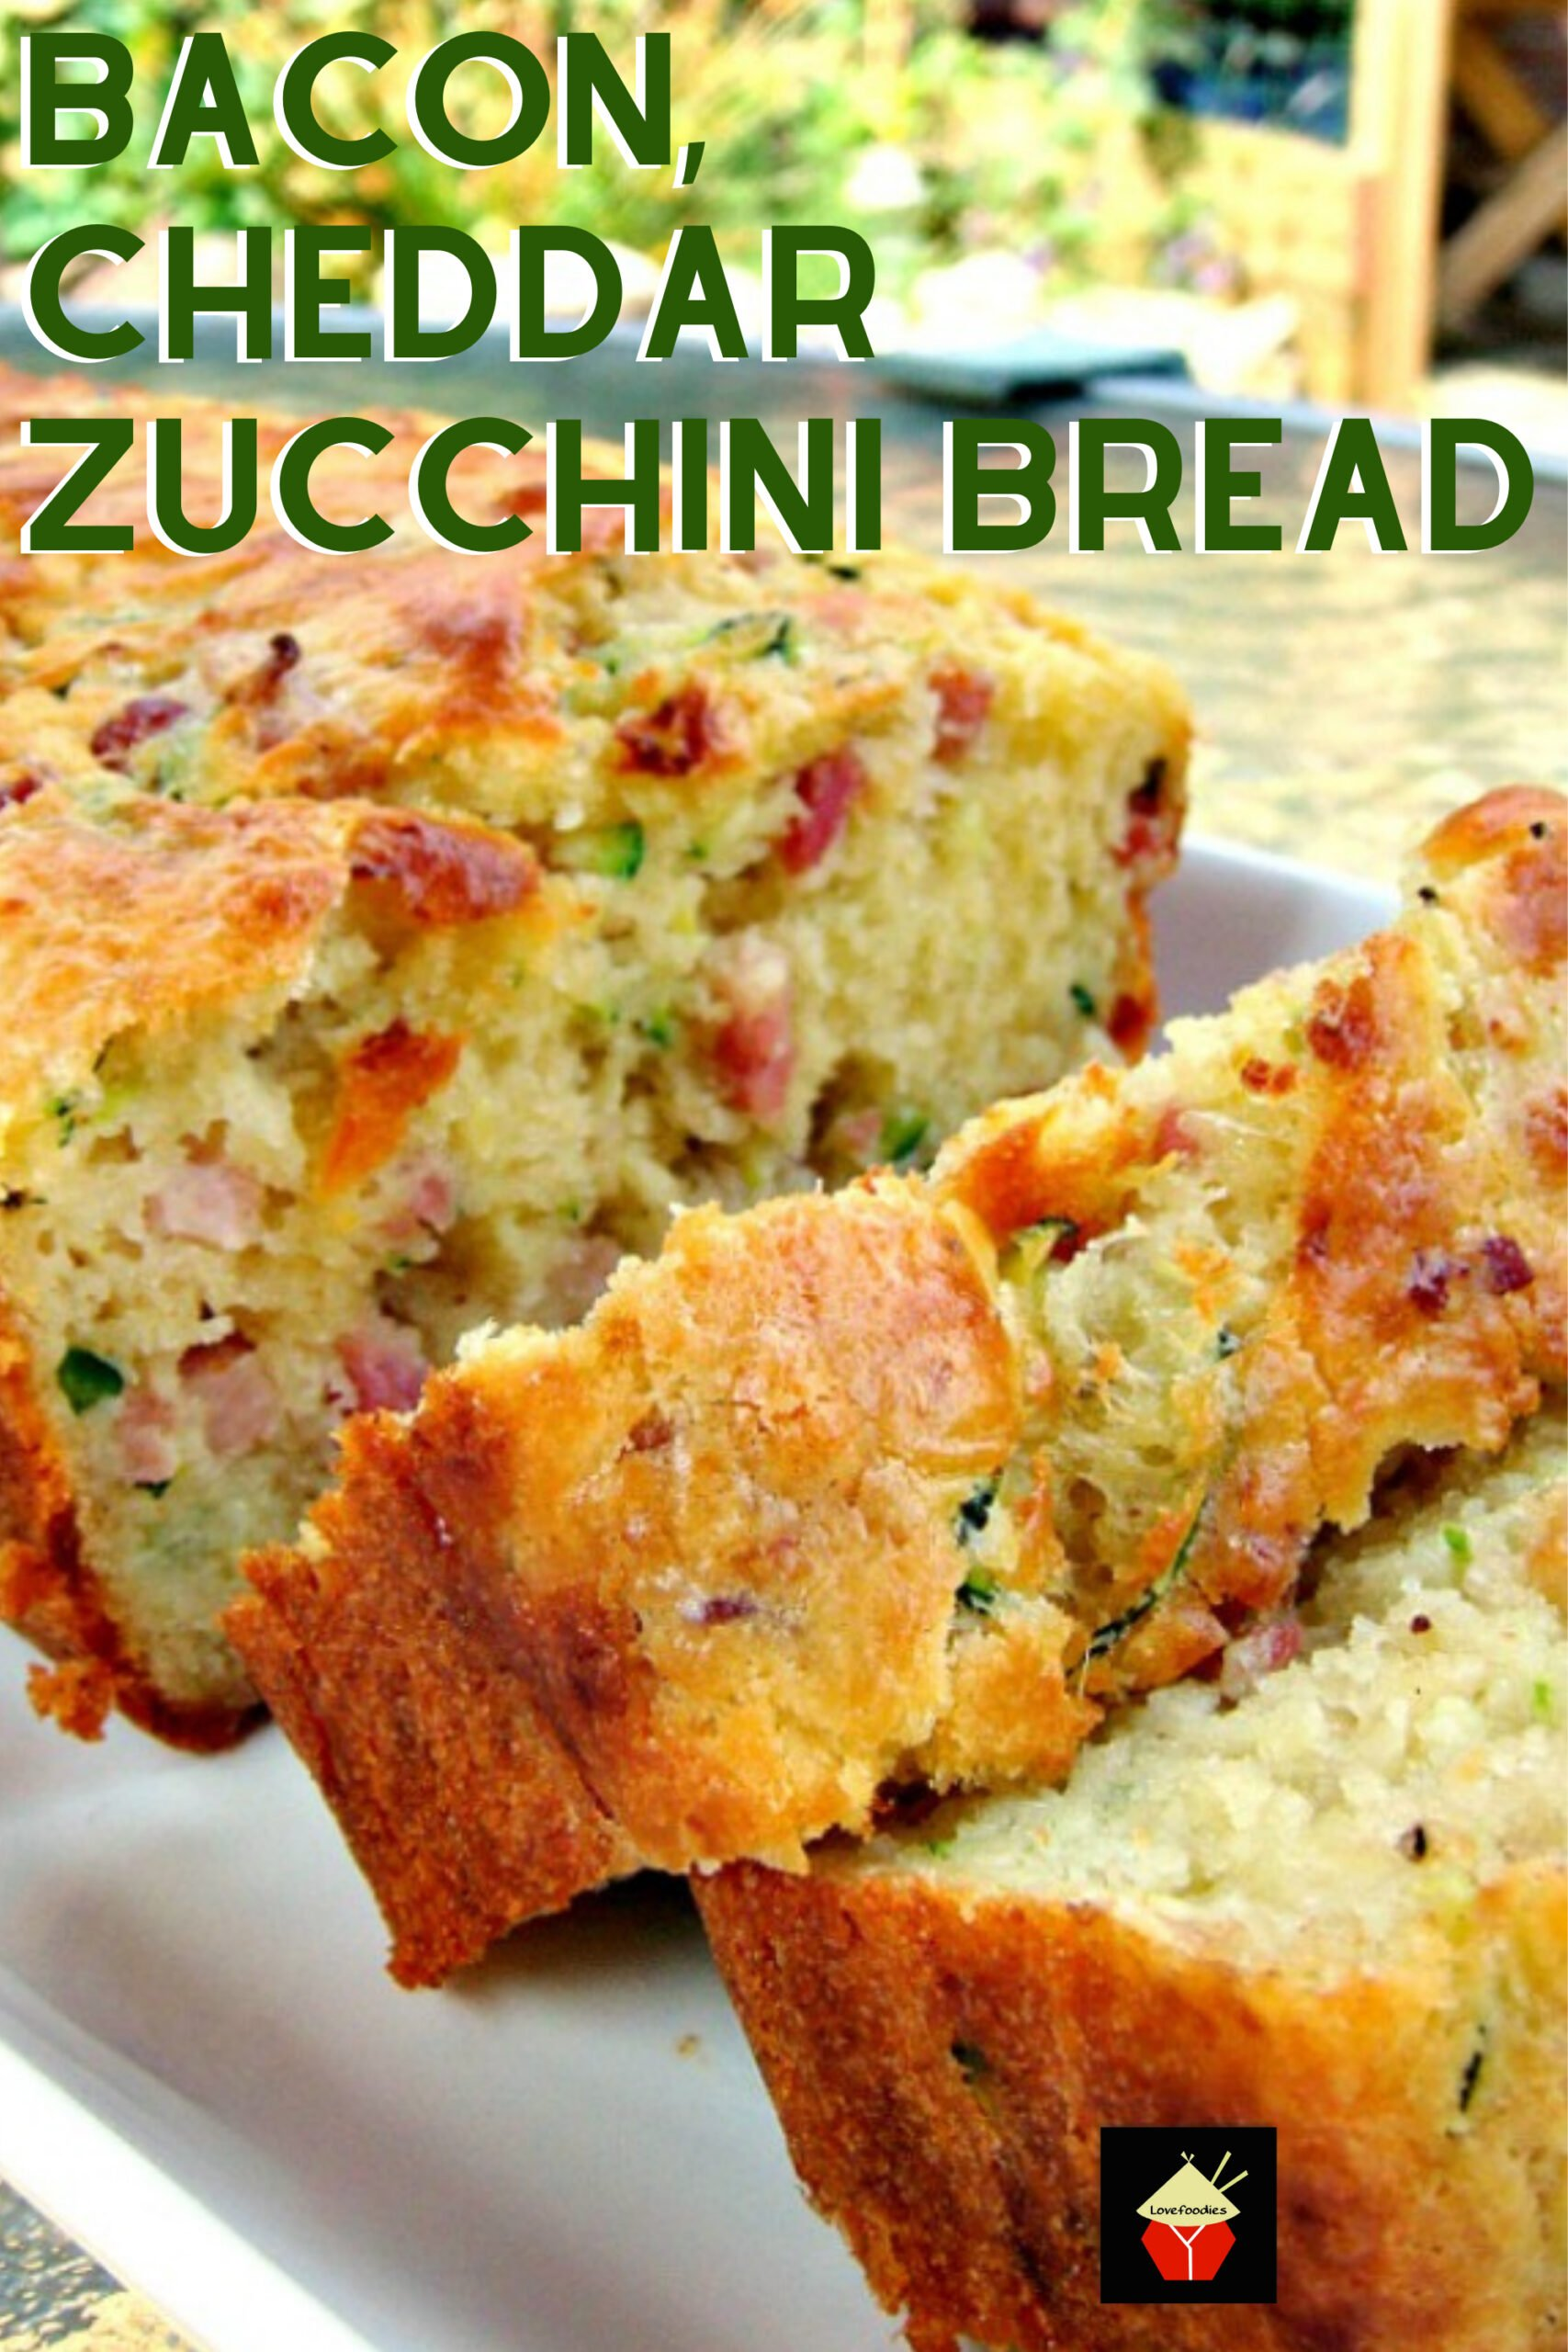 Bacon, Cheddar Zucchini Bread. A wonderful light and fluffy bread with great flavors. Serve warm or cold, it's delicious either way! great for brunches, lunch boxes, parties too!